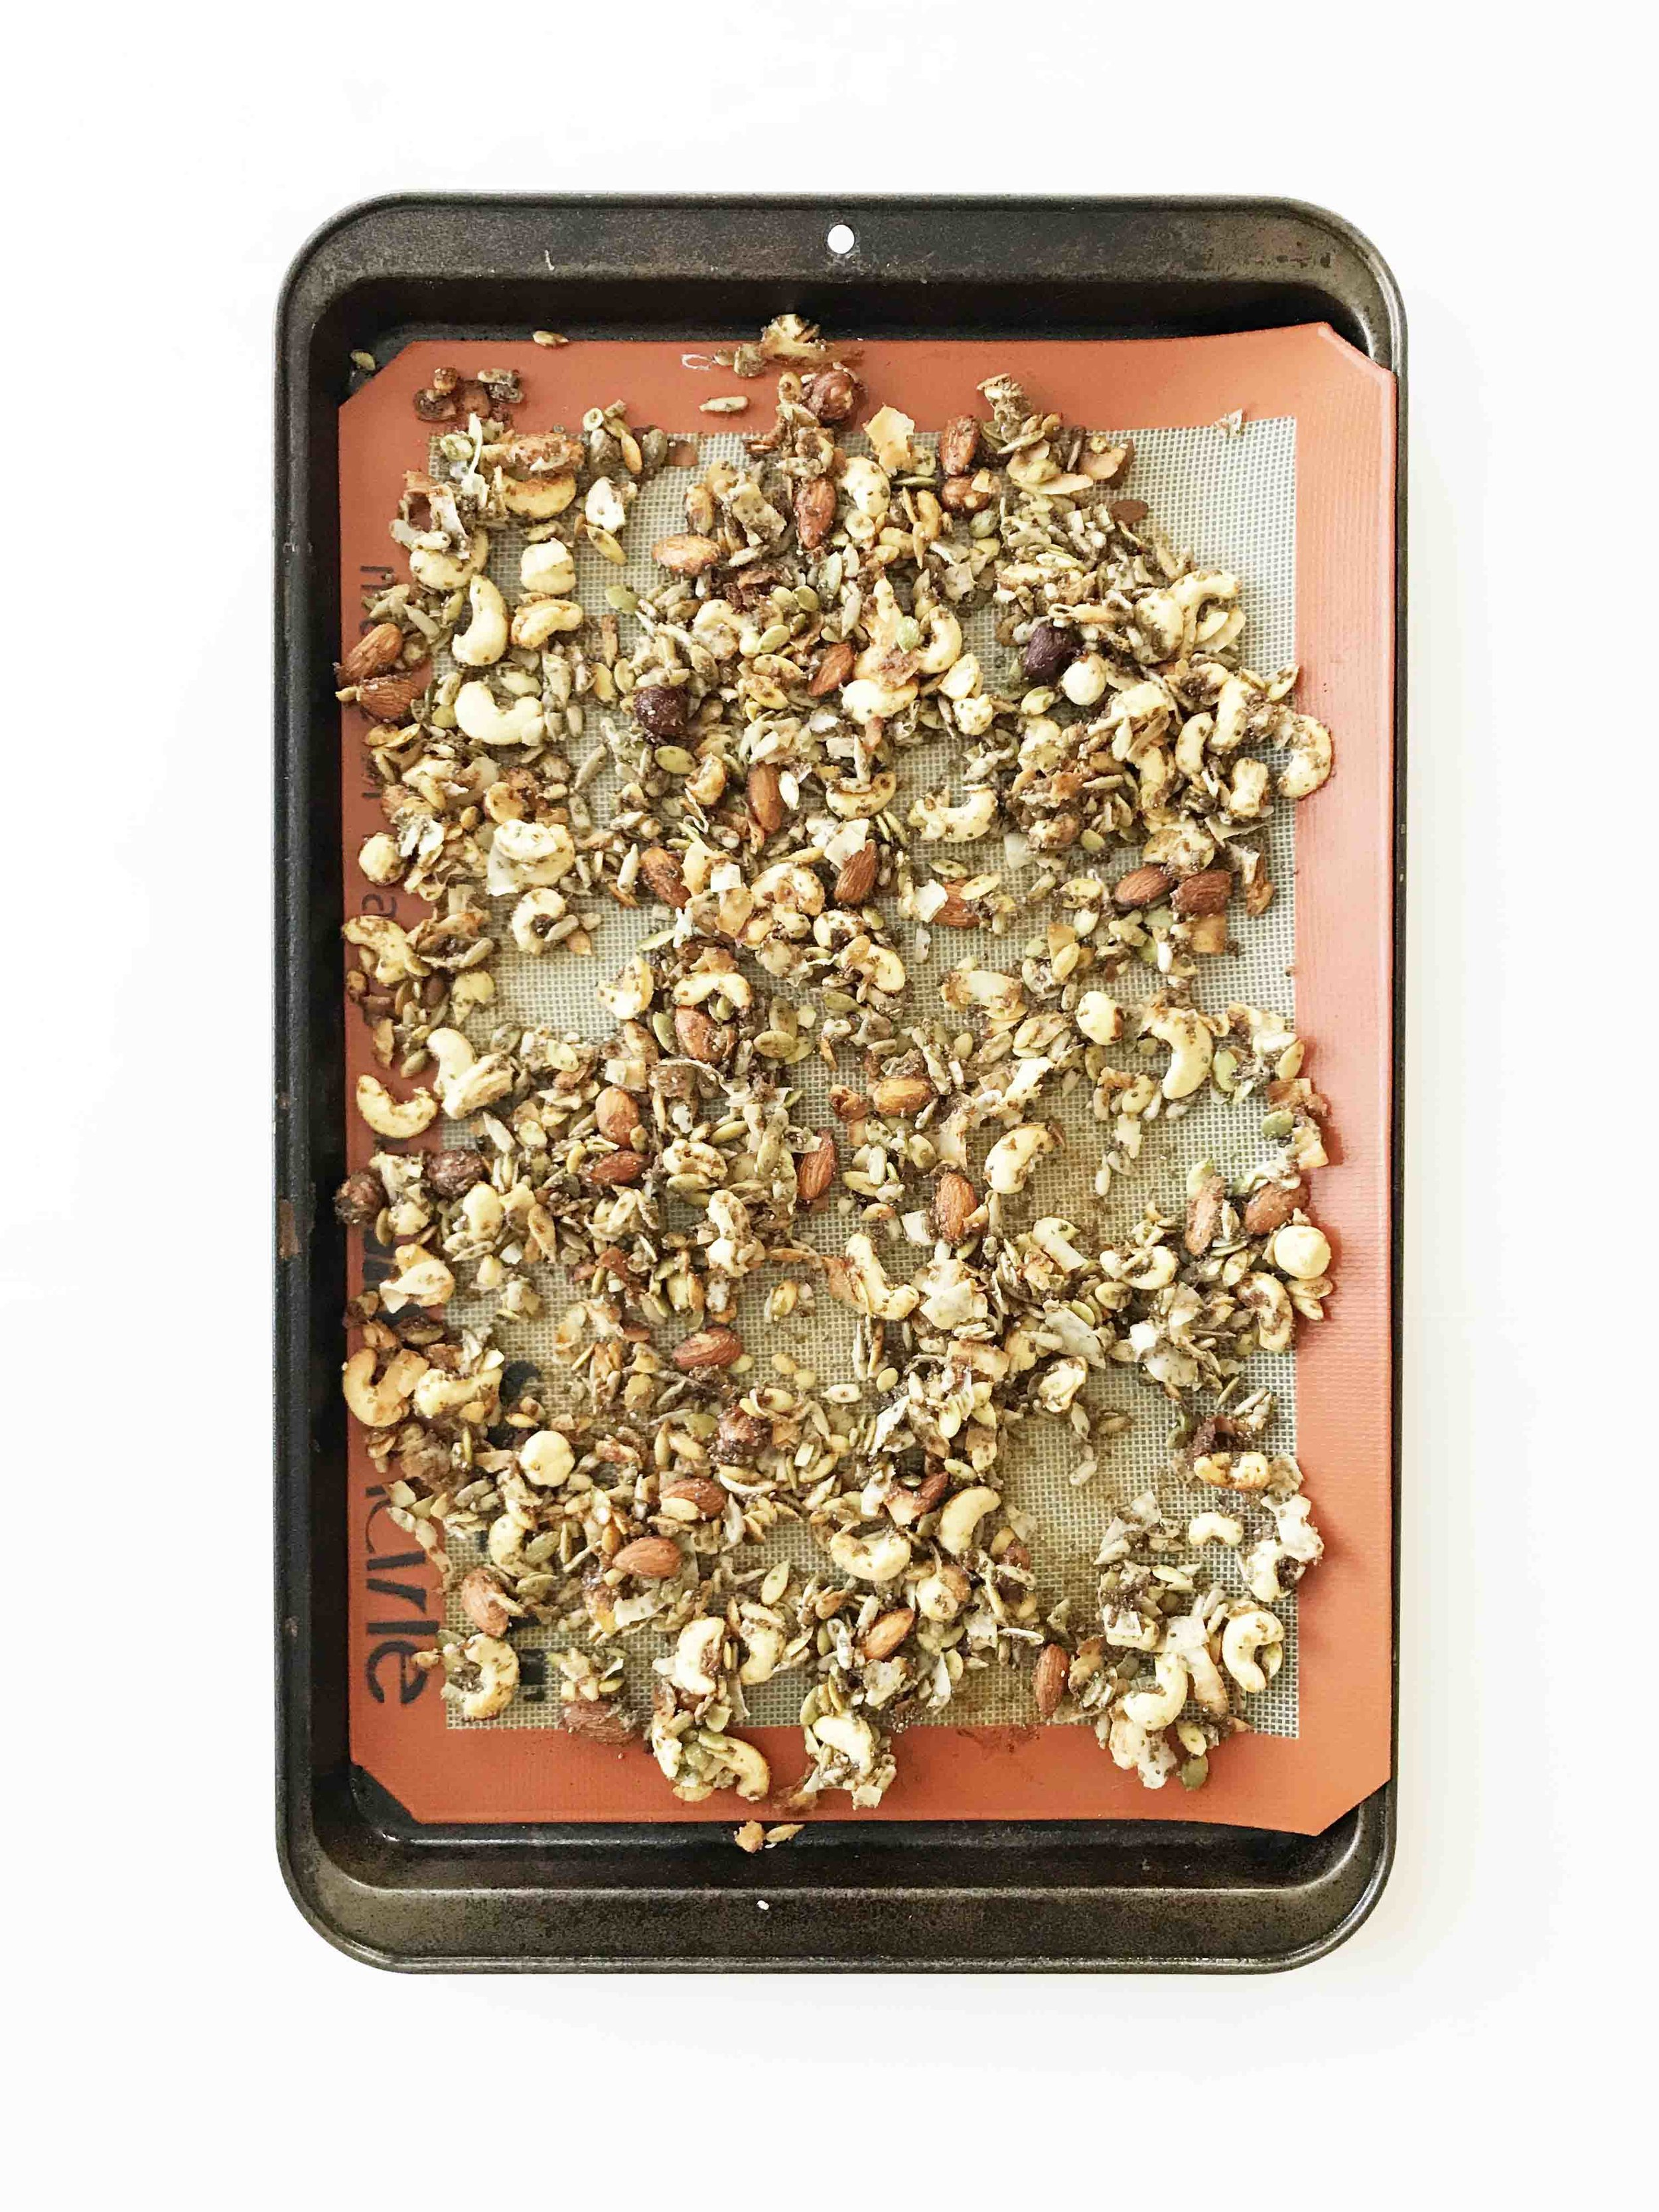 strawberry-granola4.jpg